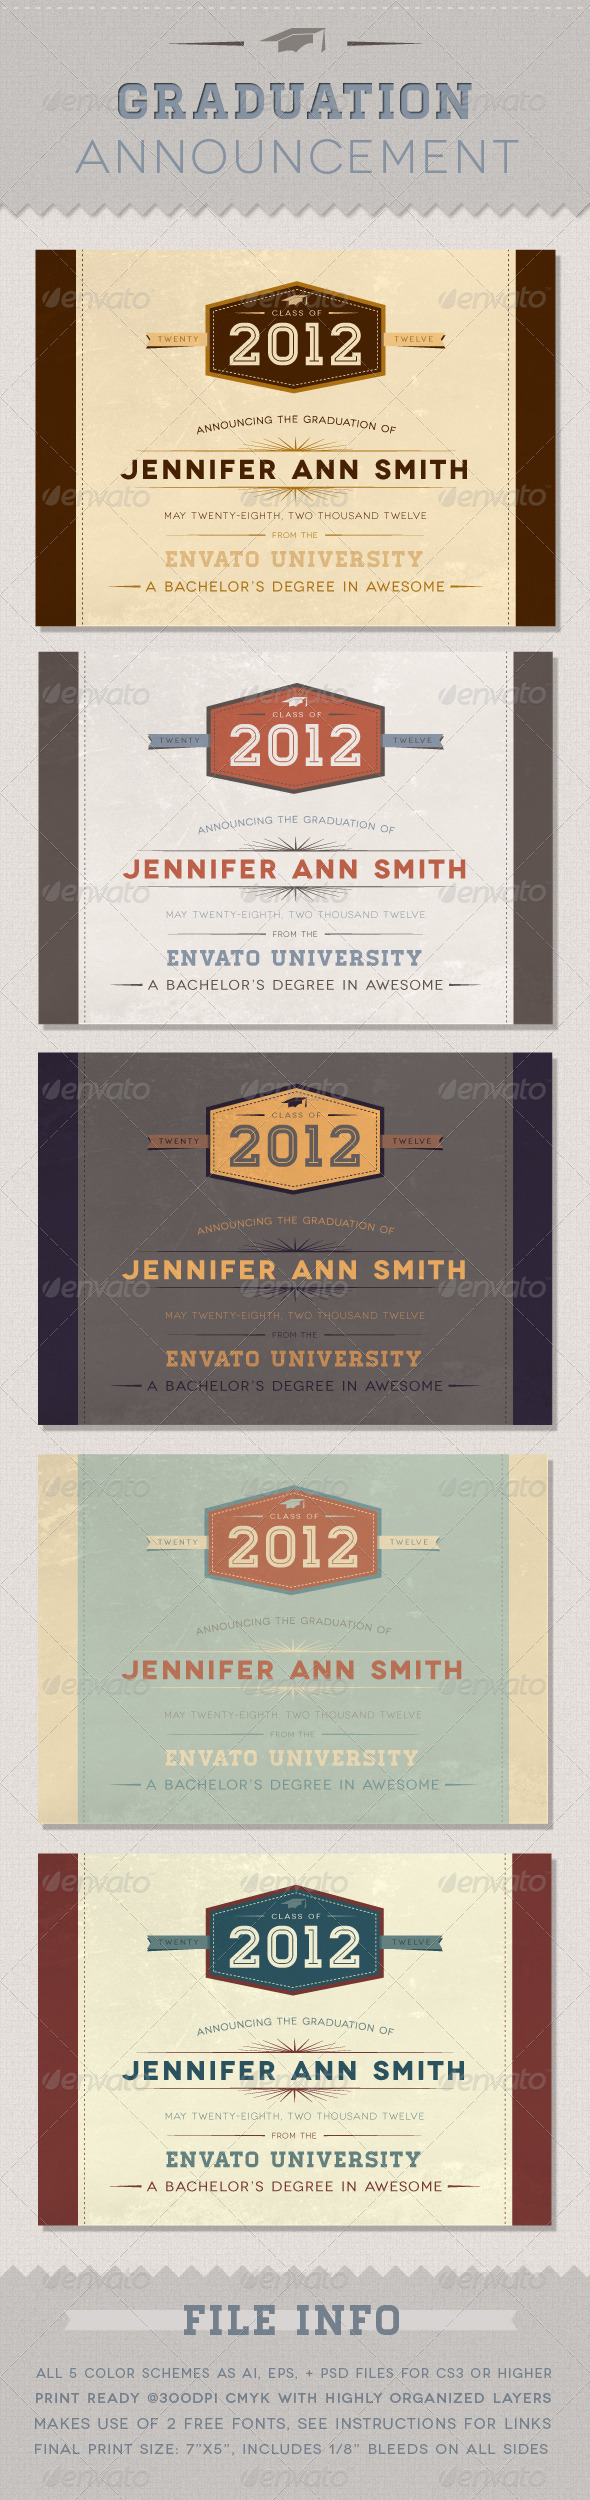 Graduation Announcement - Invitations Cards & Invites